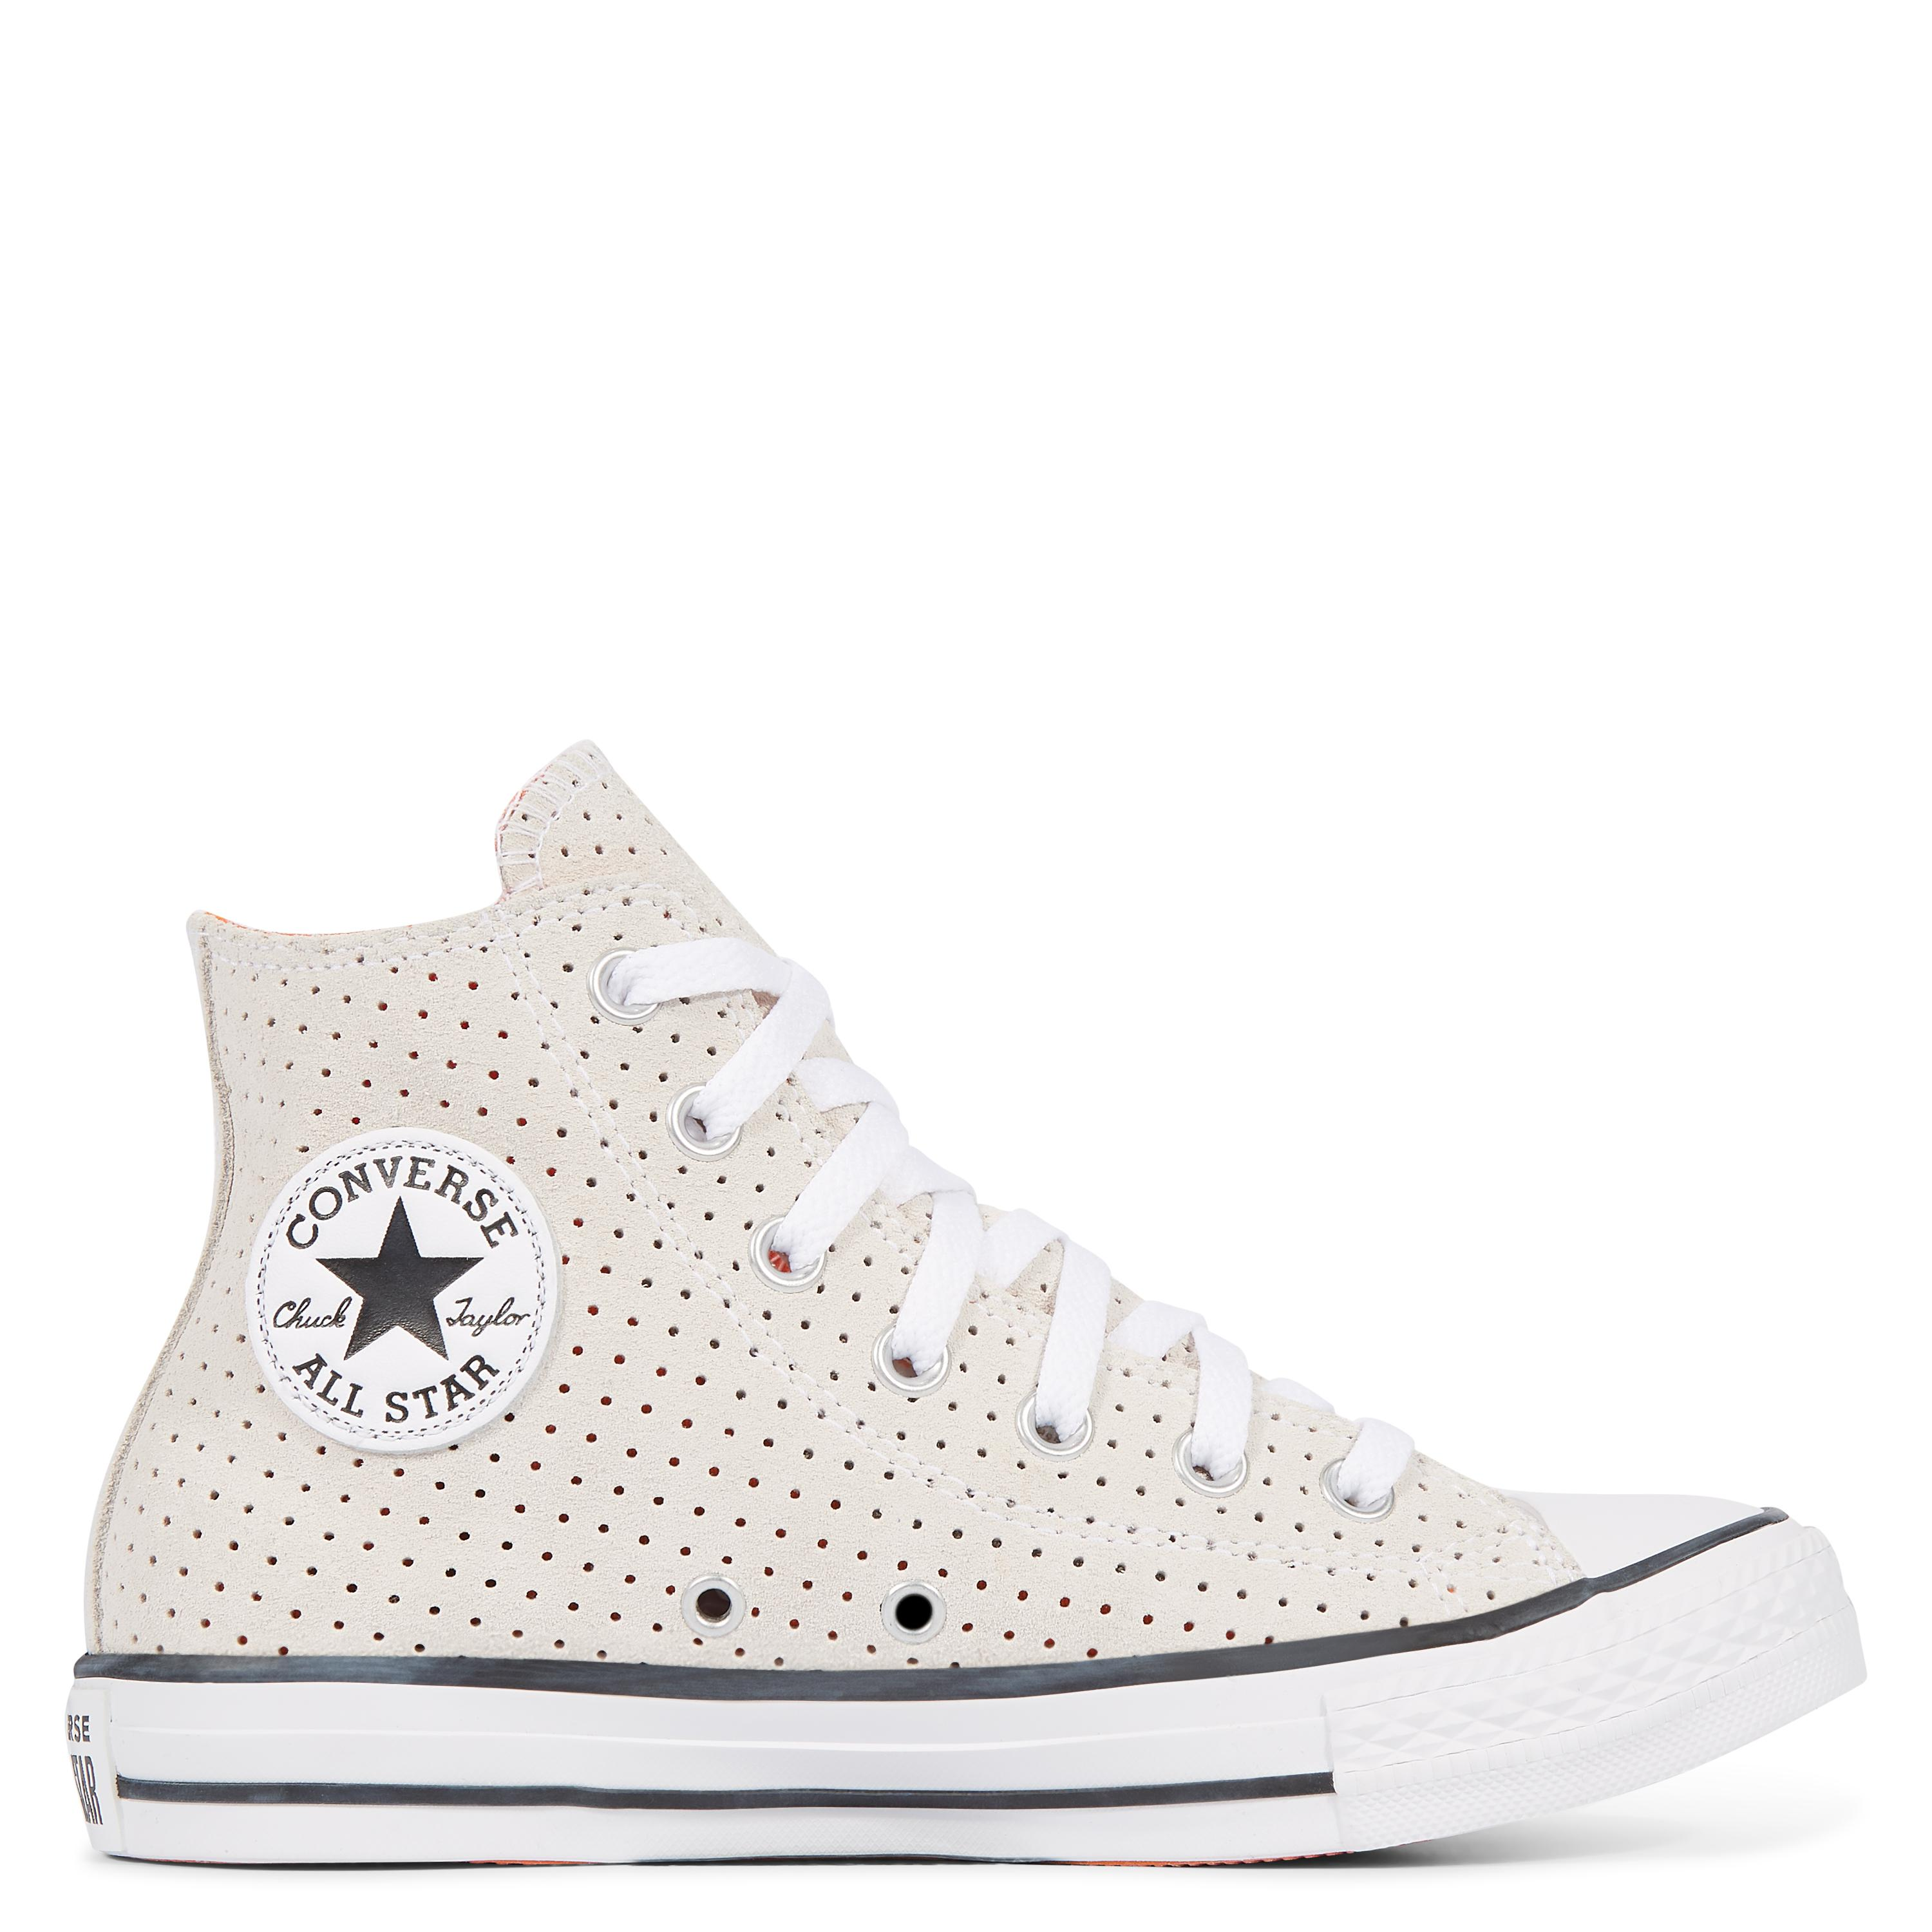 949ff8ee0390 Converse Chuck Taylor All Star Perforated Suede High Top in White - Lyst